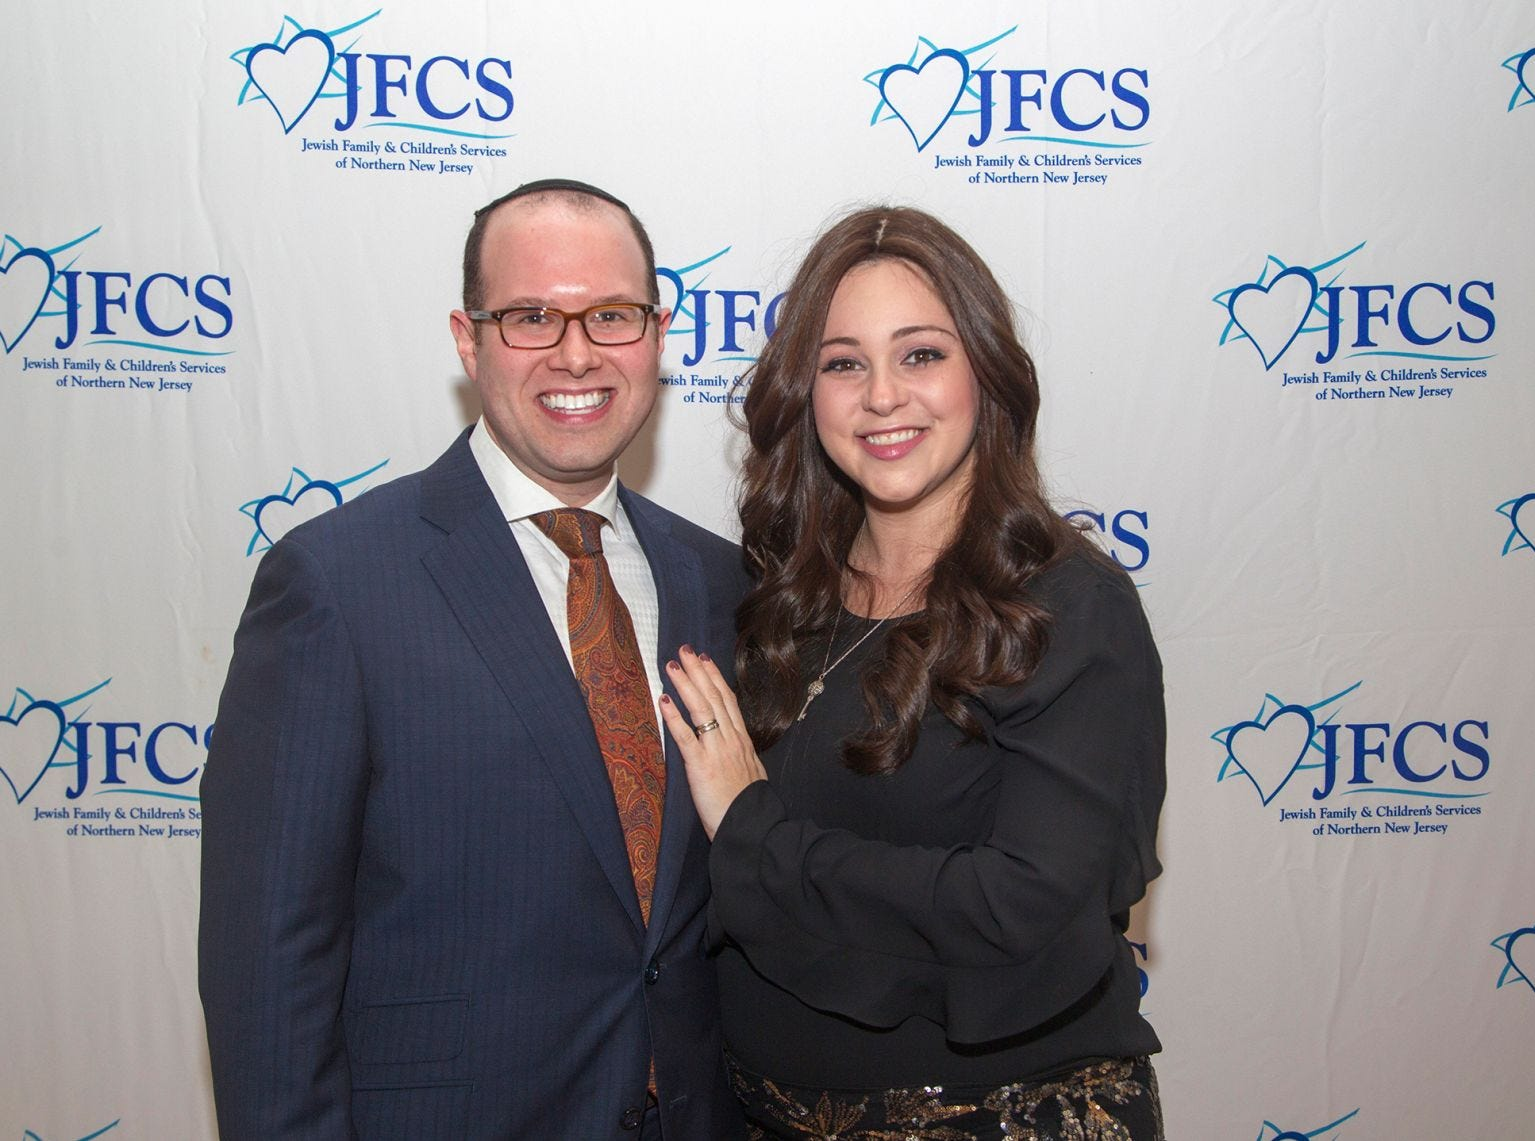 Penny and Yoel Samuel. Jewish Family & Children's Services of Northern New Jersey held its annual gala at the Edgewood Country Club in River Vale. The evening honored Shira Feuerstein, Jayne Petak, and Alan Scharfstein for their leadership, support, and dedication. 11/18/2018